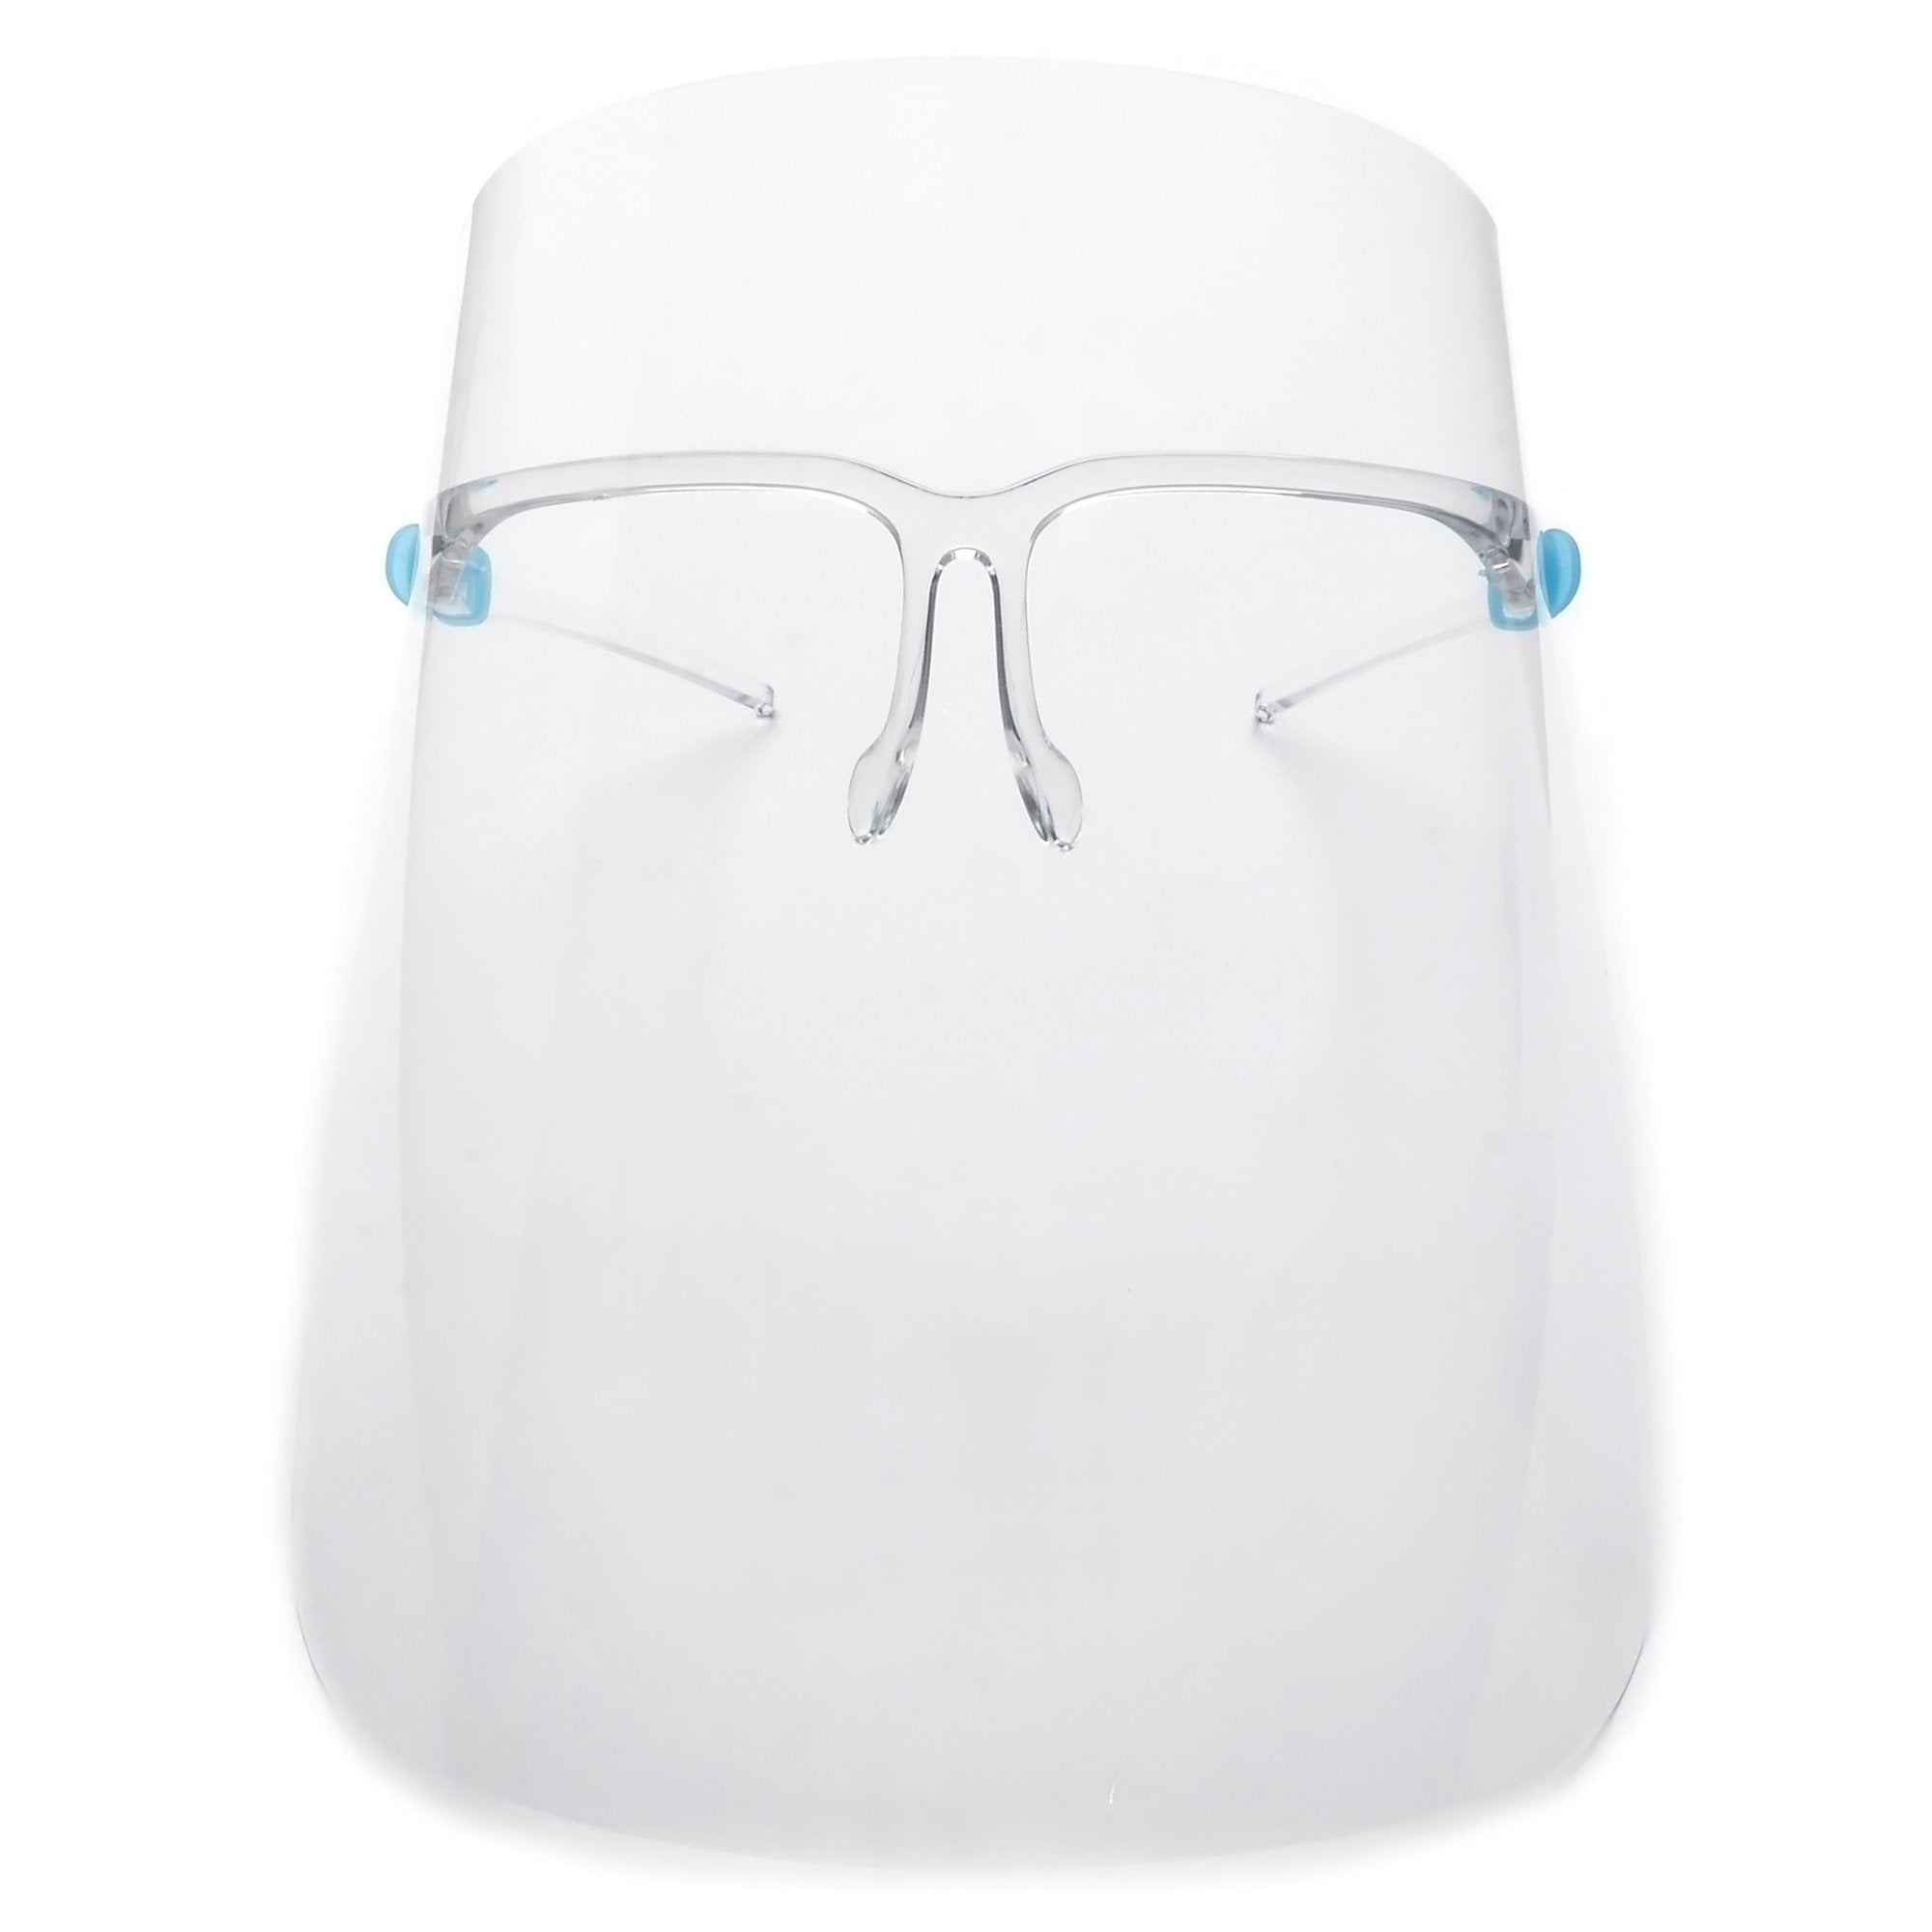 10 pack- Anti-fog Face Shield Glasses